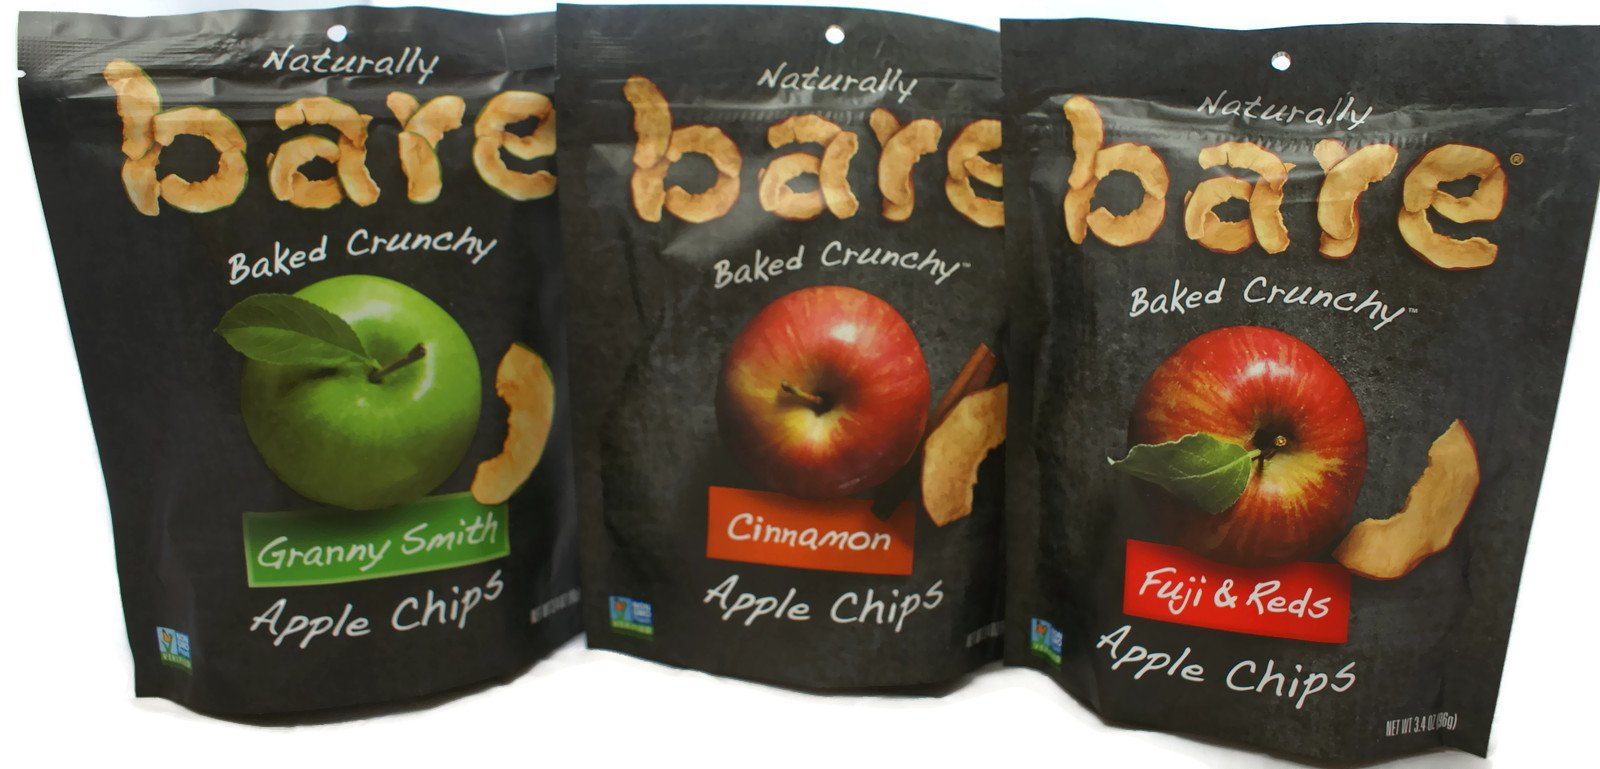 Variety Pack - Bare Apple Chips - (3.4 oz) Granny Smith, Fuji & Reds, Cinnamon